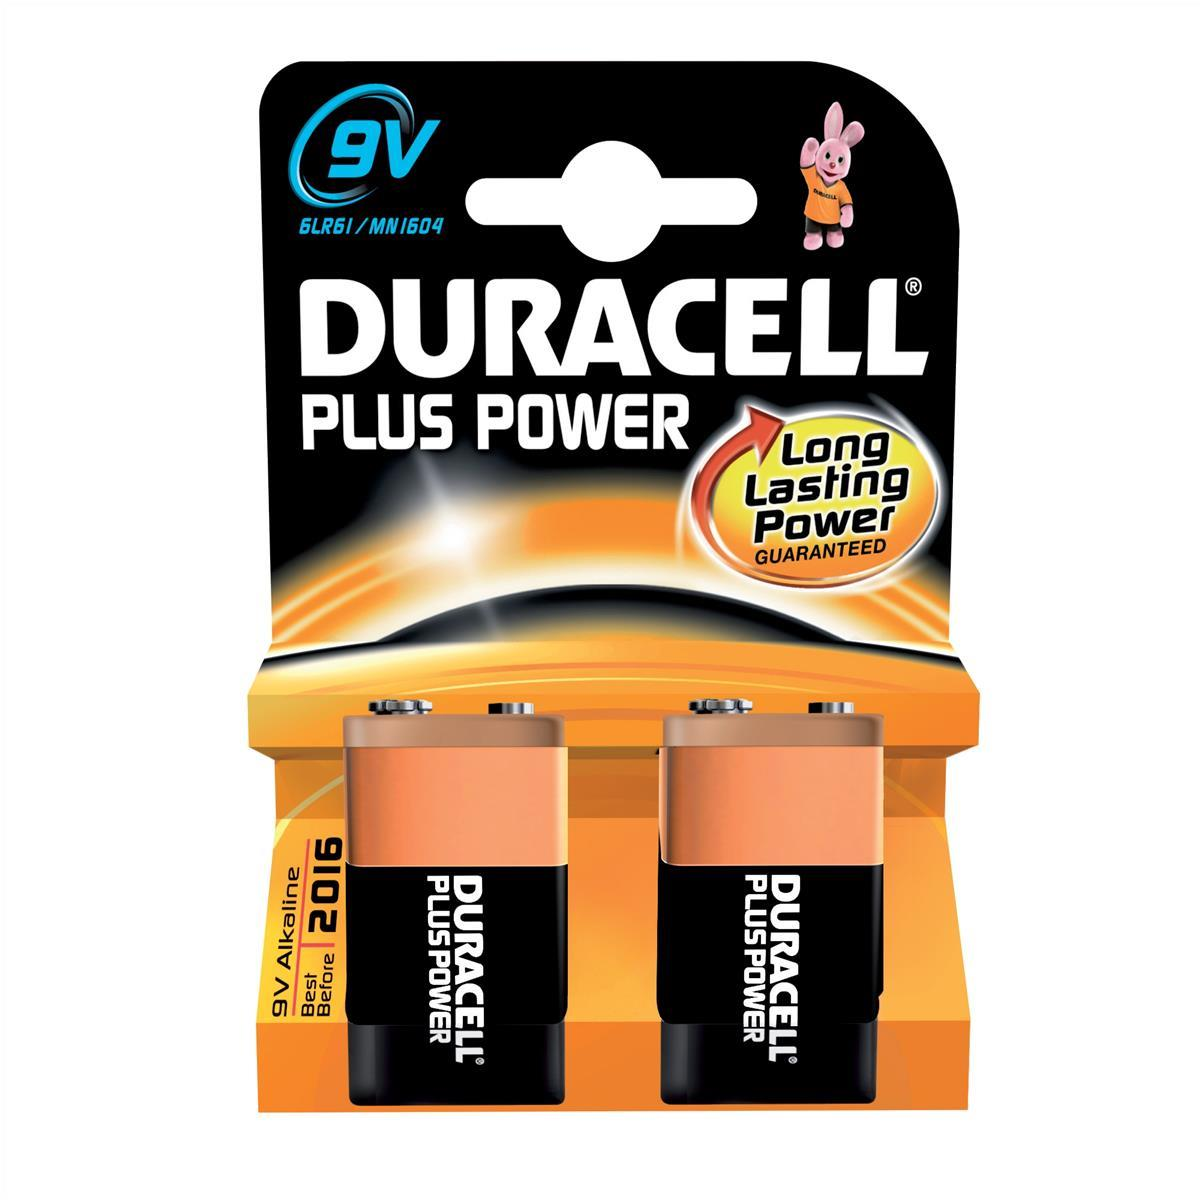 Image for Duracell Plus Power MN1604 Battery Alkaline 9V Ref 81275459 [Pack 2]